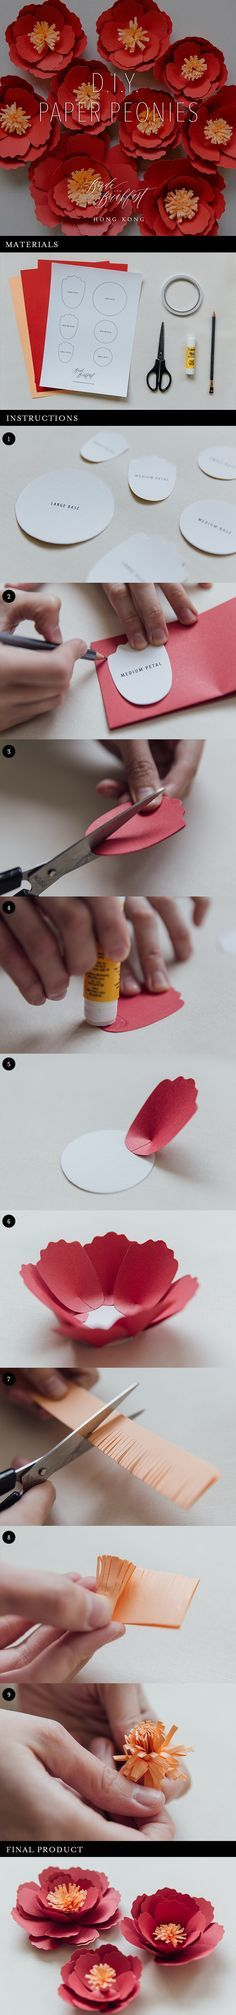 DIY Paper Peonies | Paper Craft | Paper Flowers | Wedding Decor | Free Printable Template